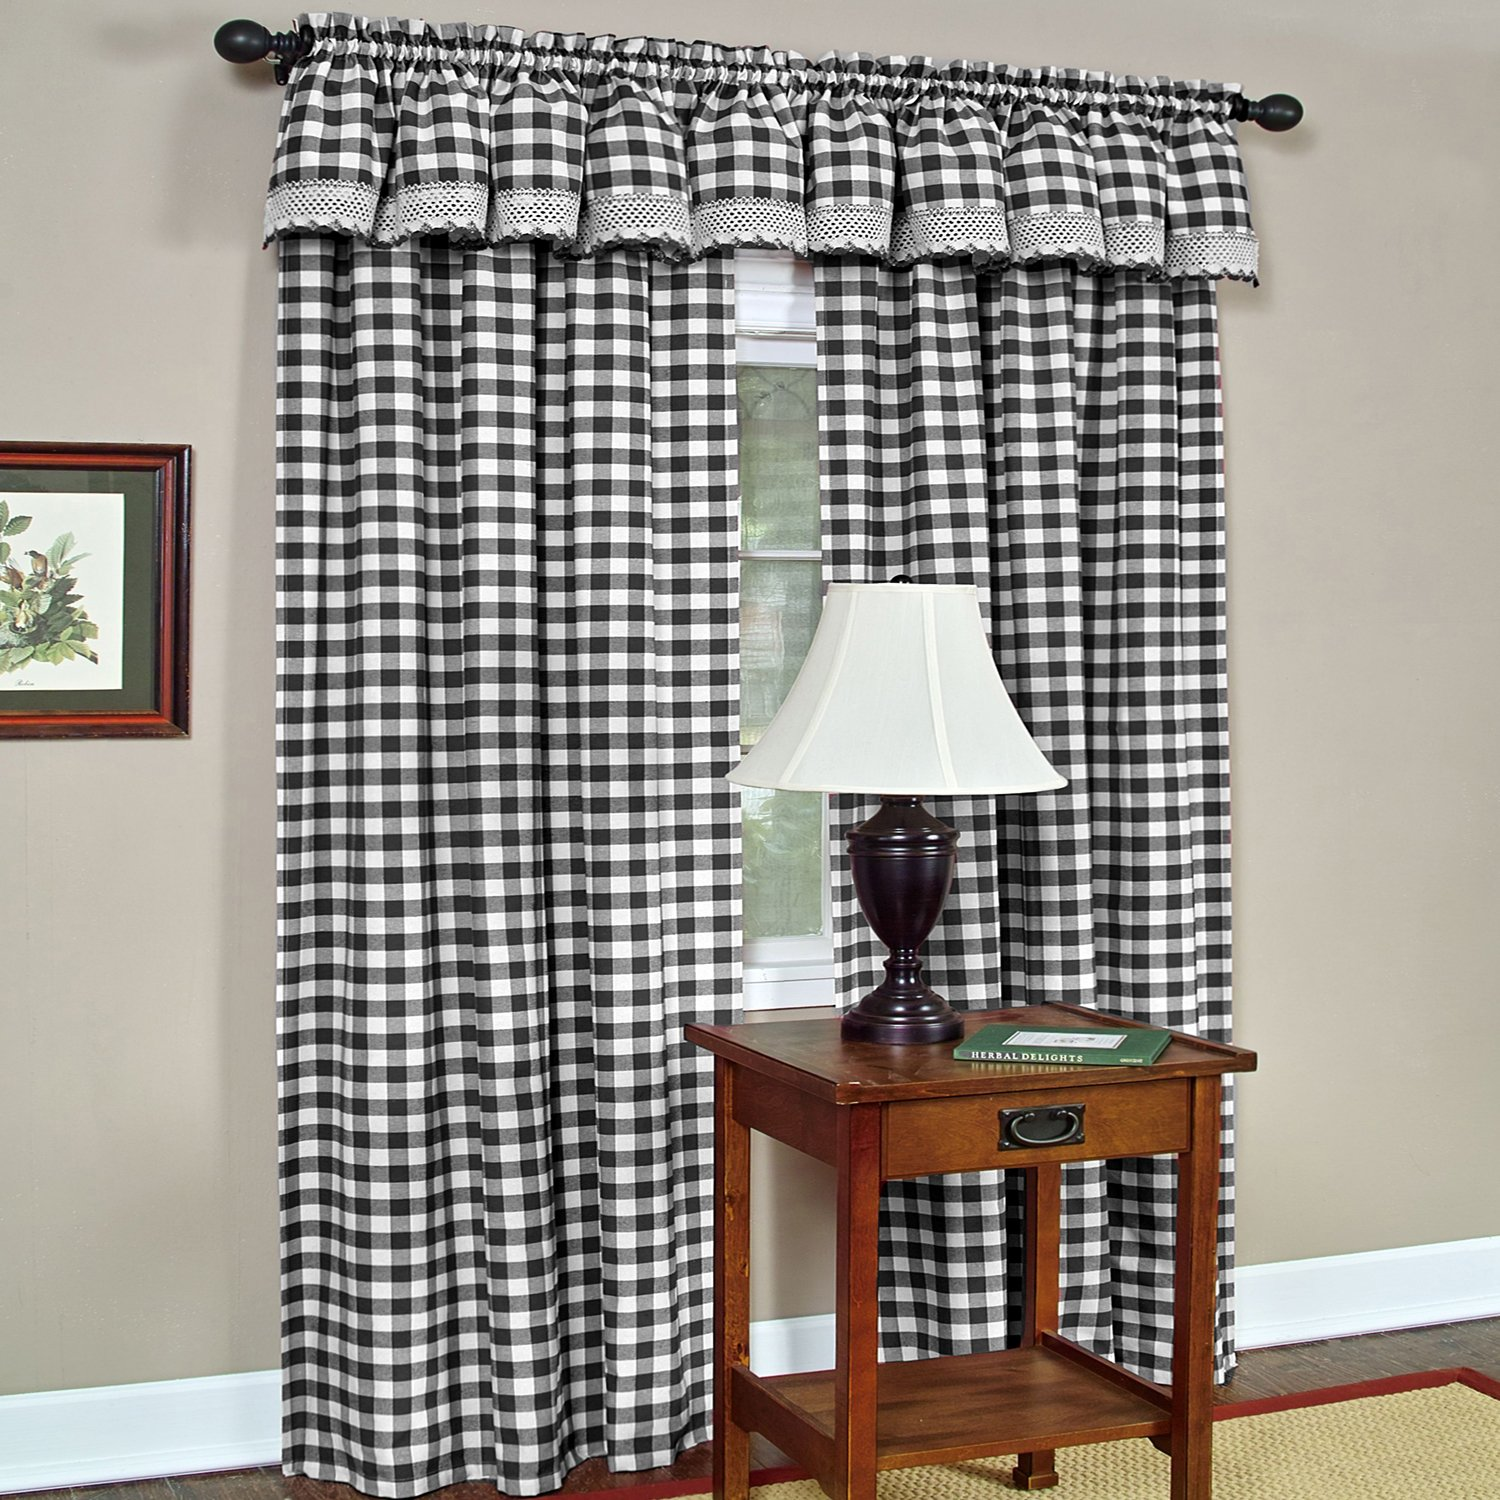 Black and white checked curtains - Amazon Com Achim Home Furnishings Buffalo Check Window Curtain Panel Black White 42 X 84 Inch Home Kitchen